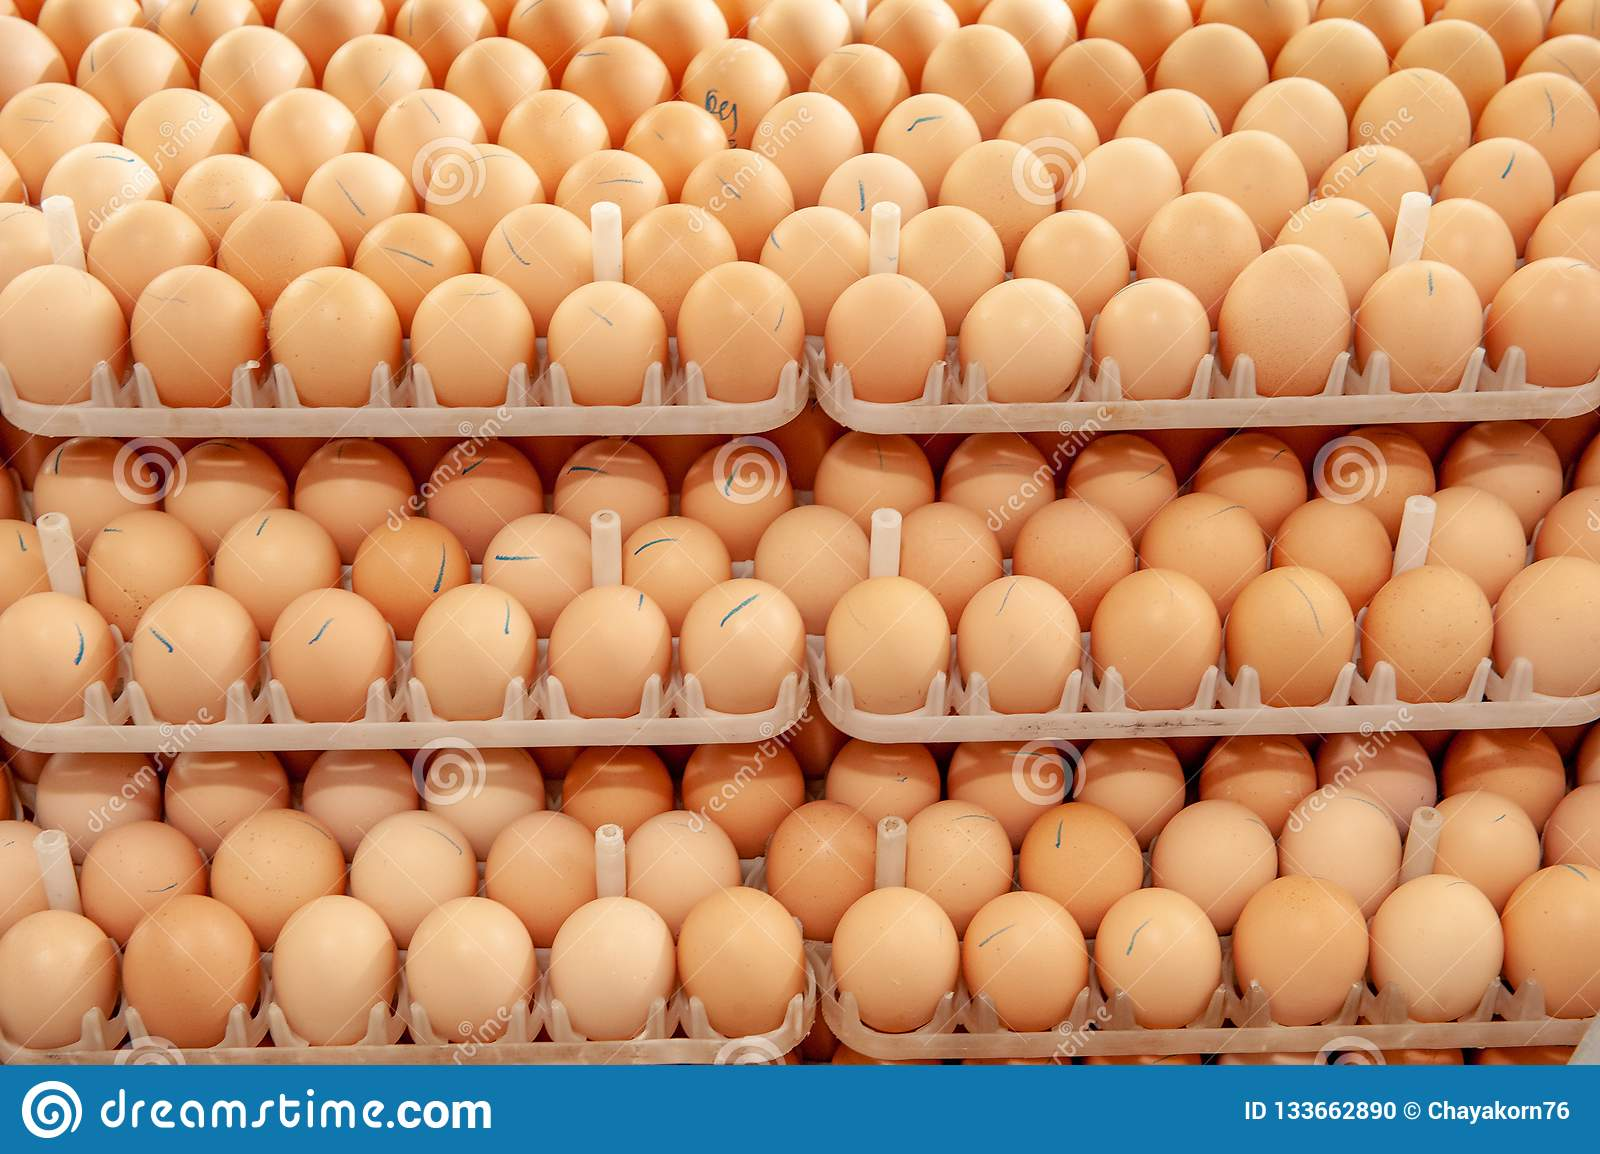 Lot of eggs on tray from breeders farm.